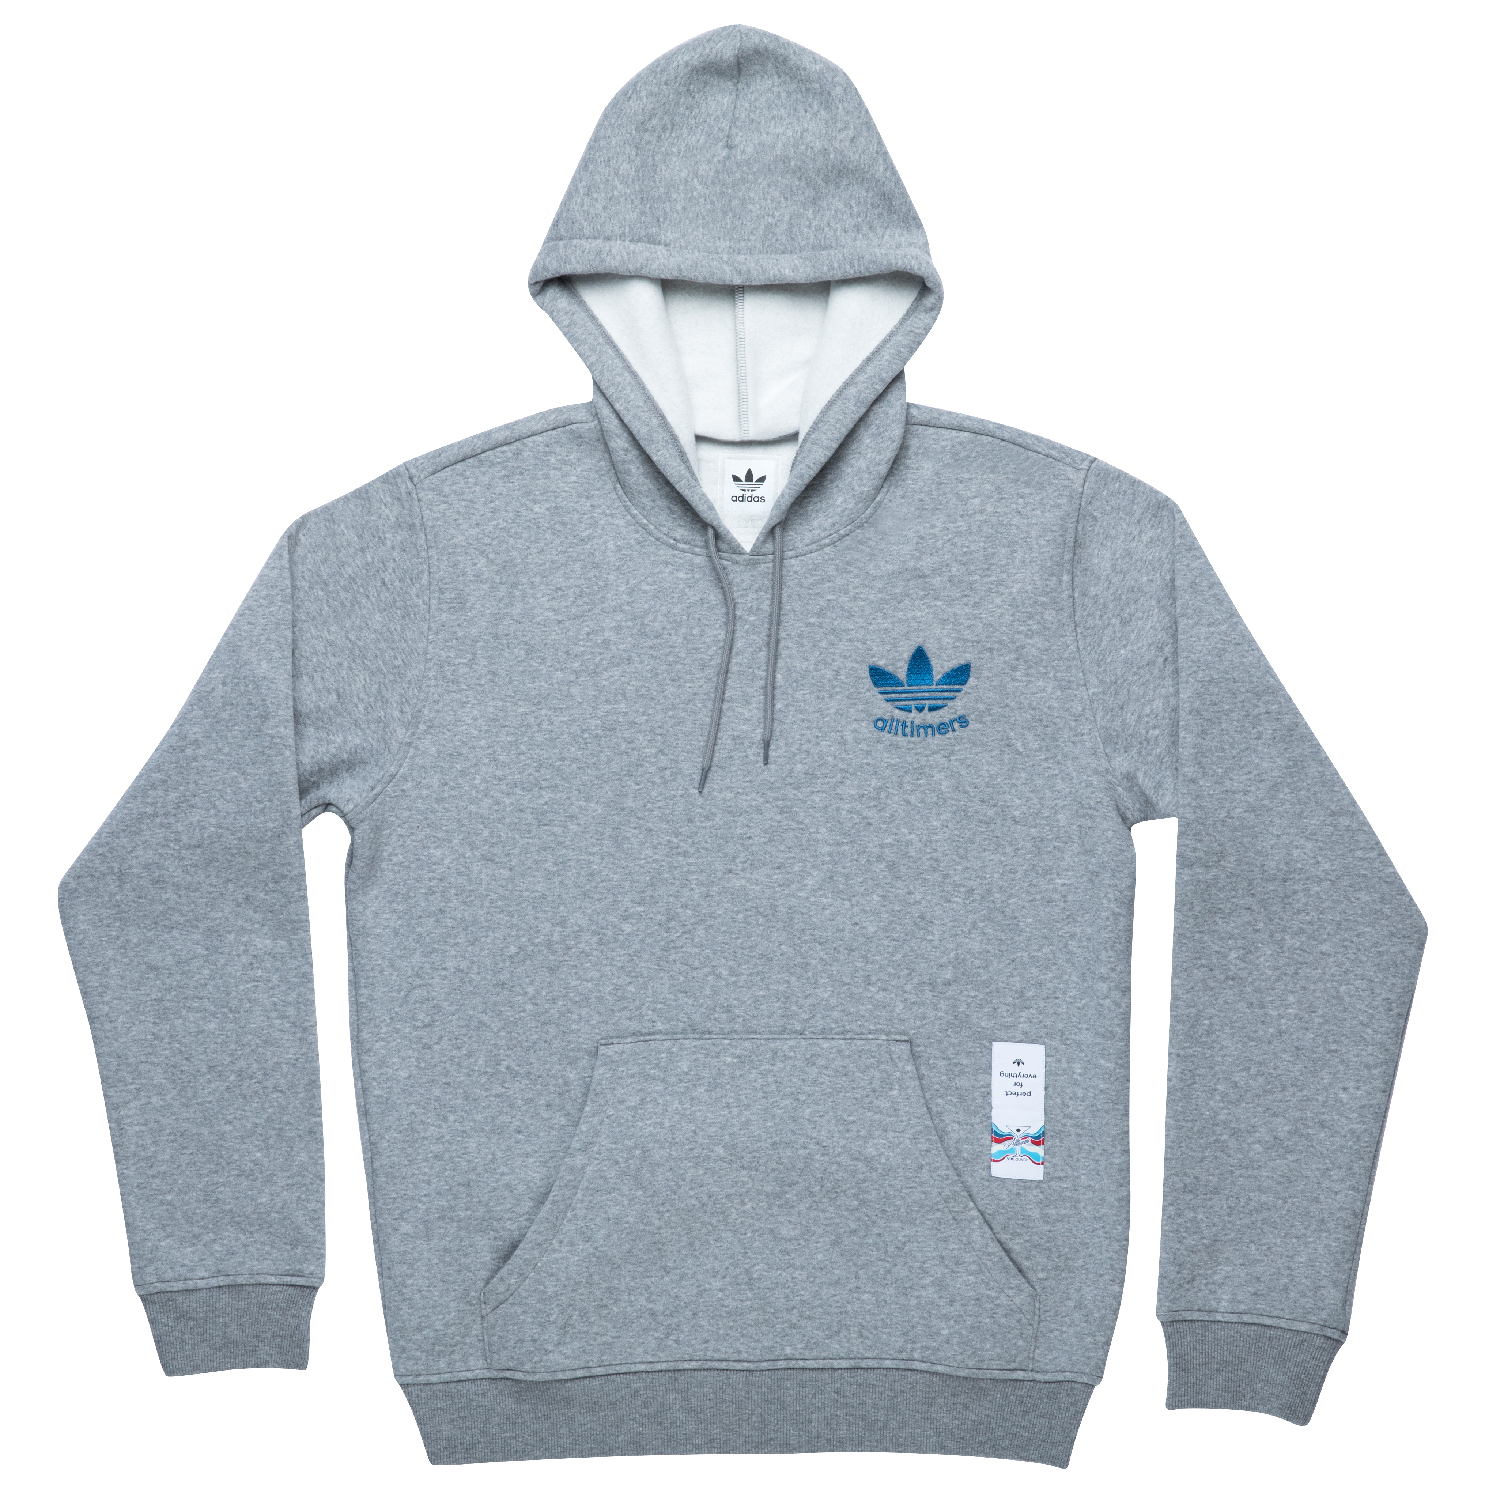 adidas alltimers core heather pullover hoodie. Black Bedroom Furniture Sets. Home Design Ideas